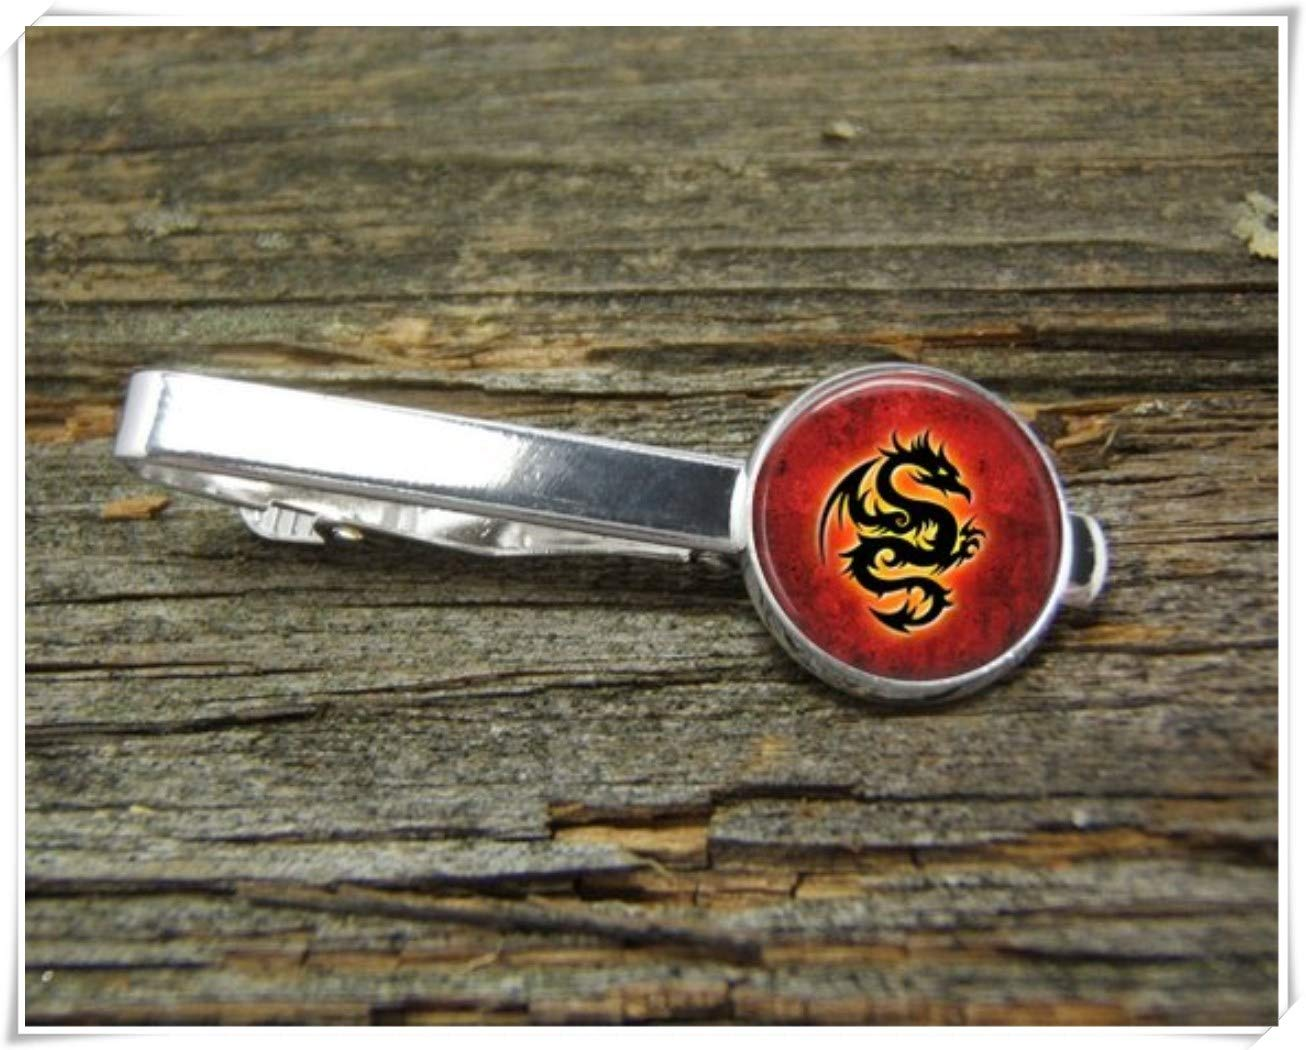 Fashion cool jewelry Dragon Tie Clip, red Tie Clip,Man Gift,Dome Glass Ornaments, Pure Hand-Made